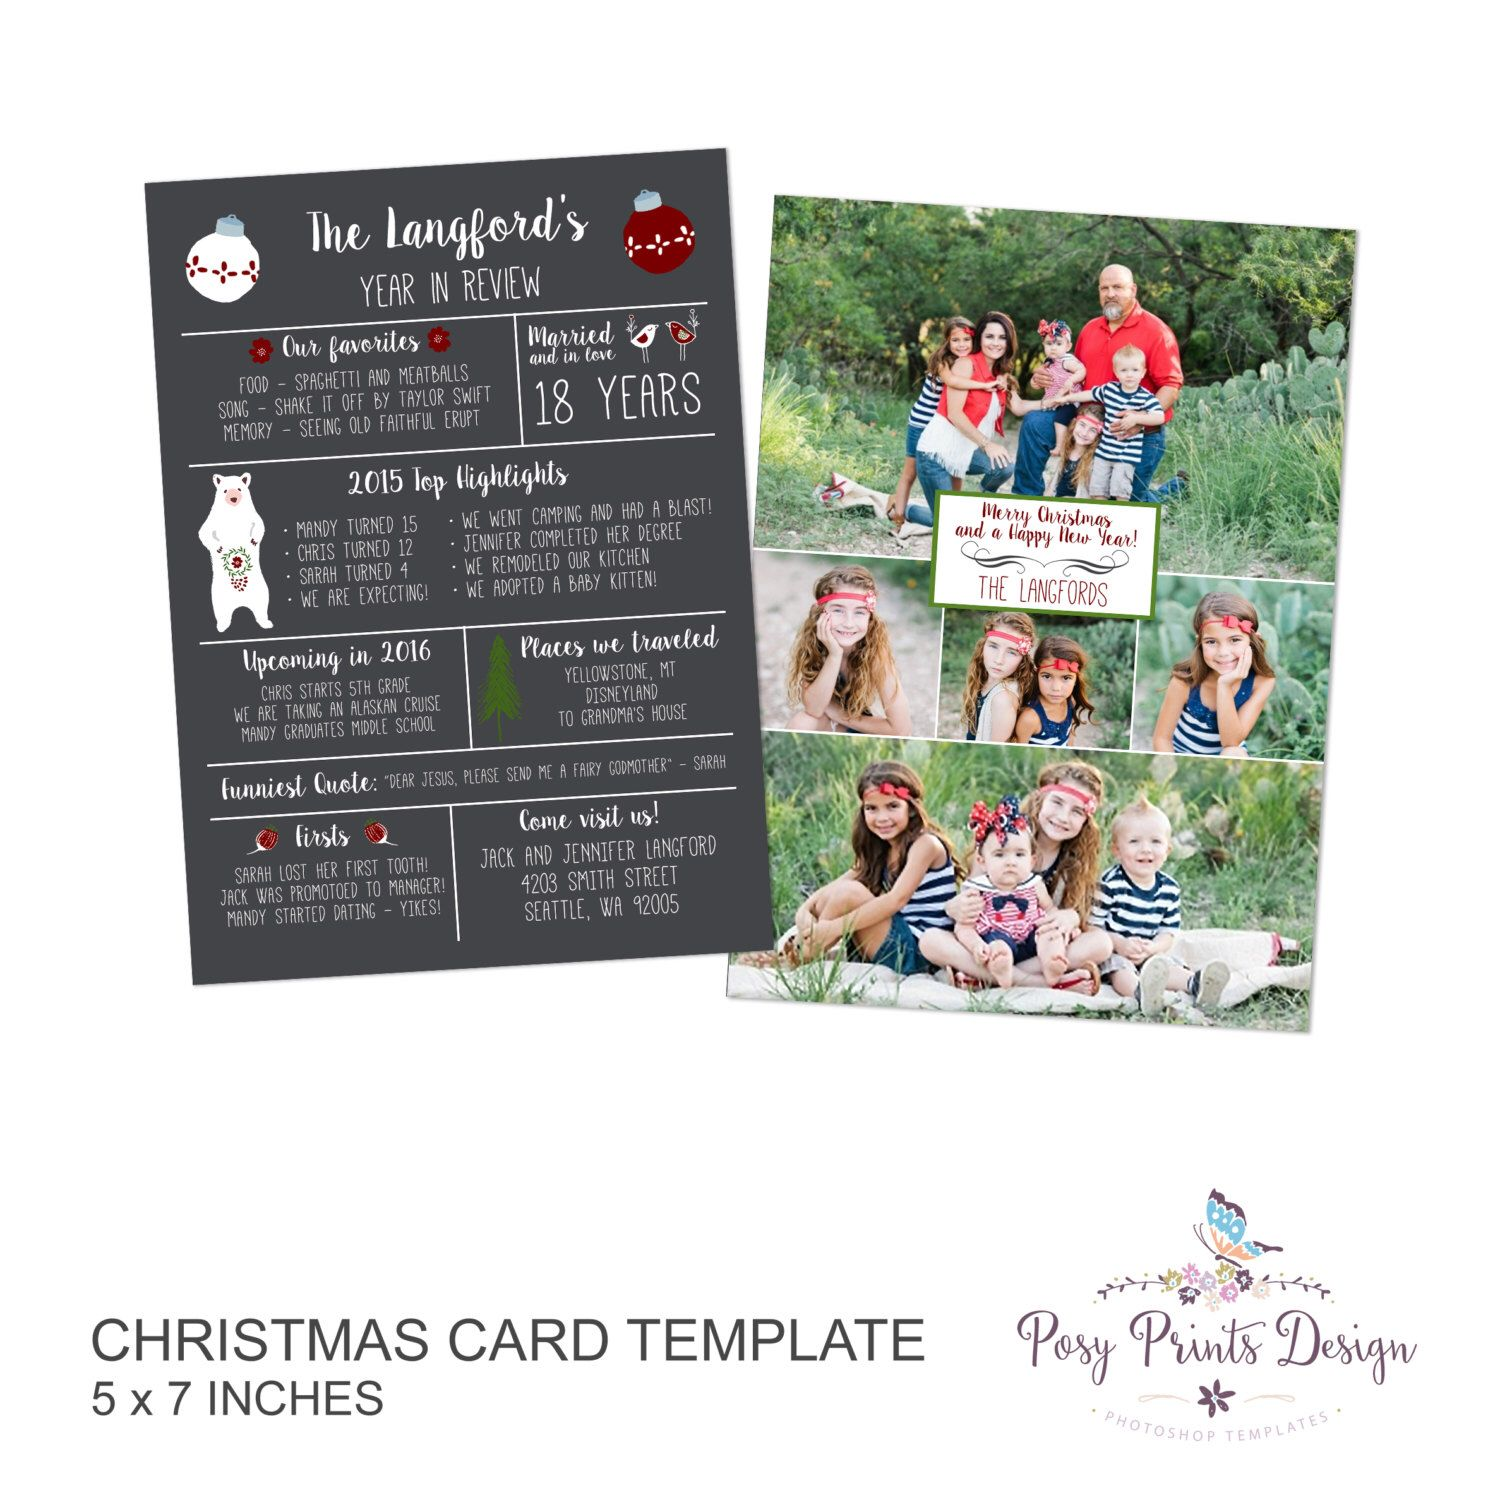 Year In Review Christmas Card Template 5x7 Photo Card Photoshop Template Instant Download Or Printable Christmas Card Template Cards Postcard Template